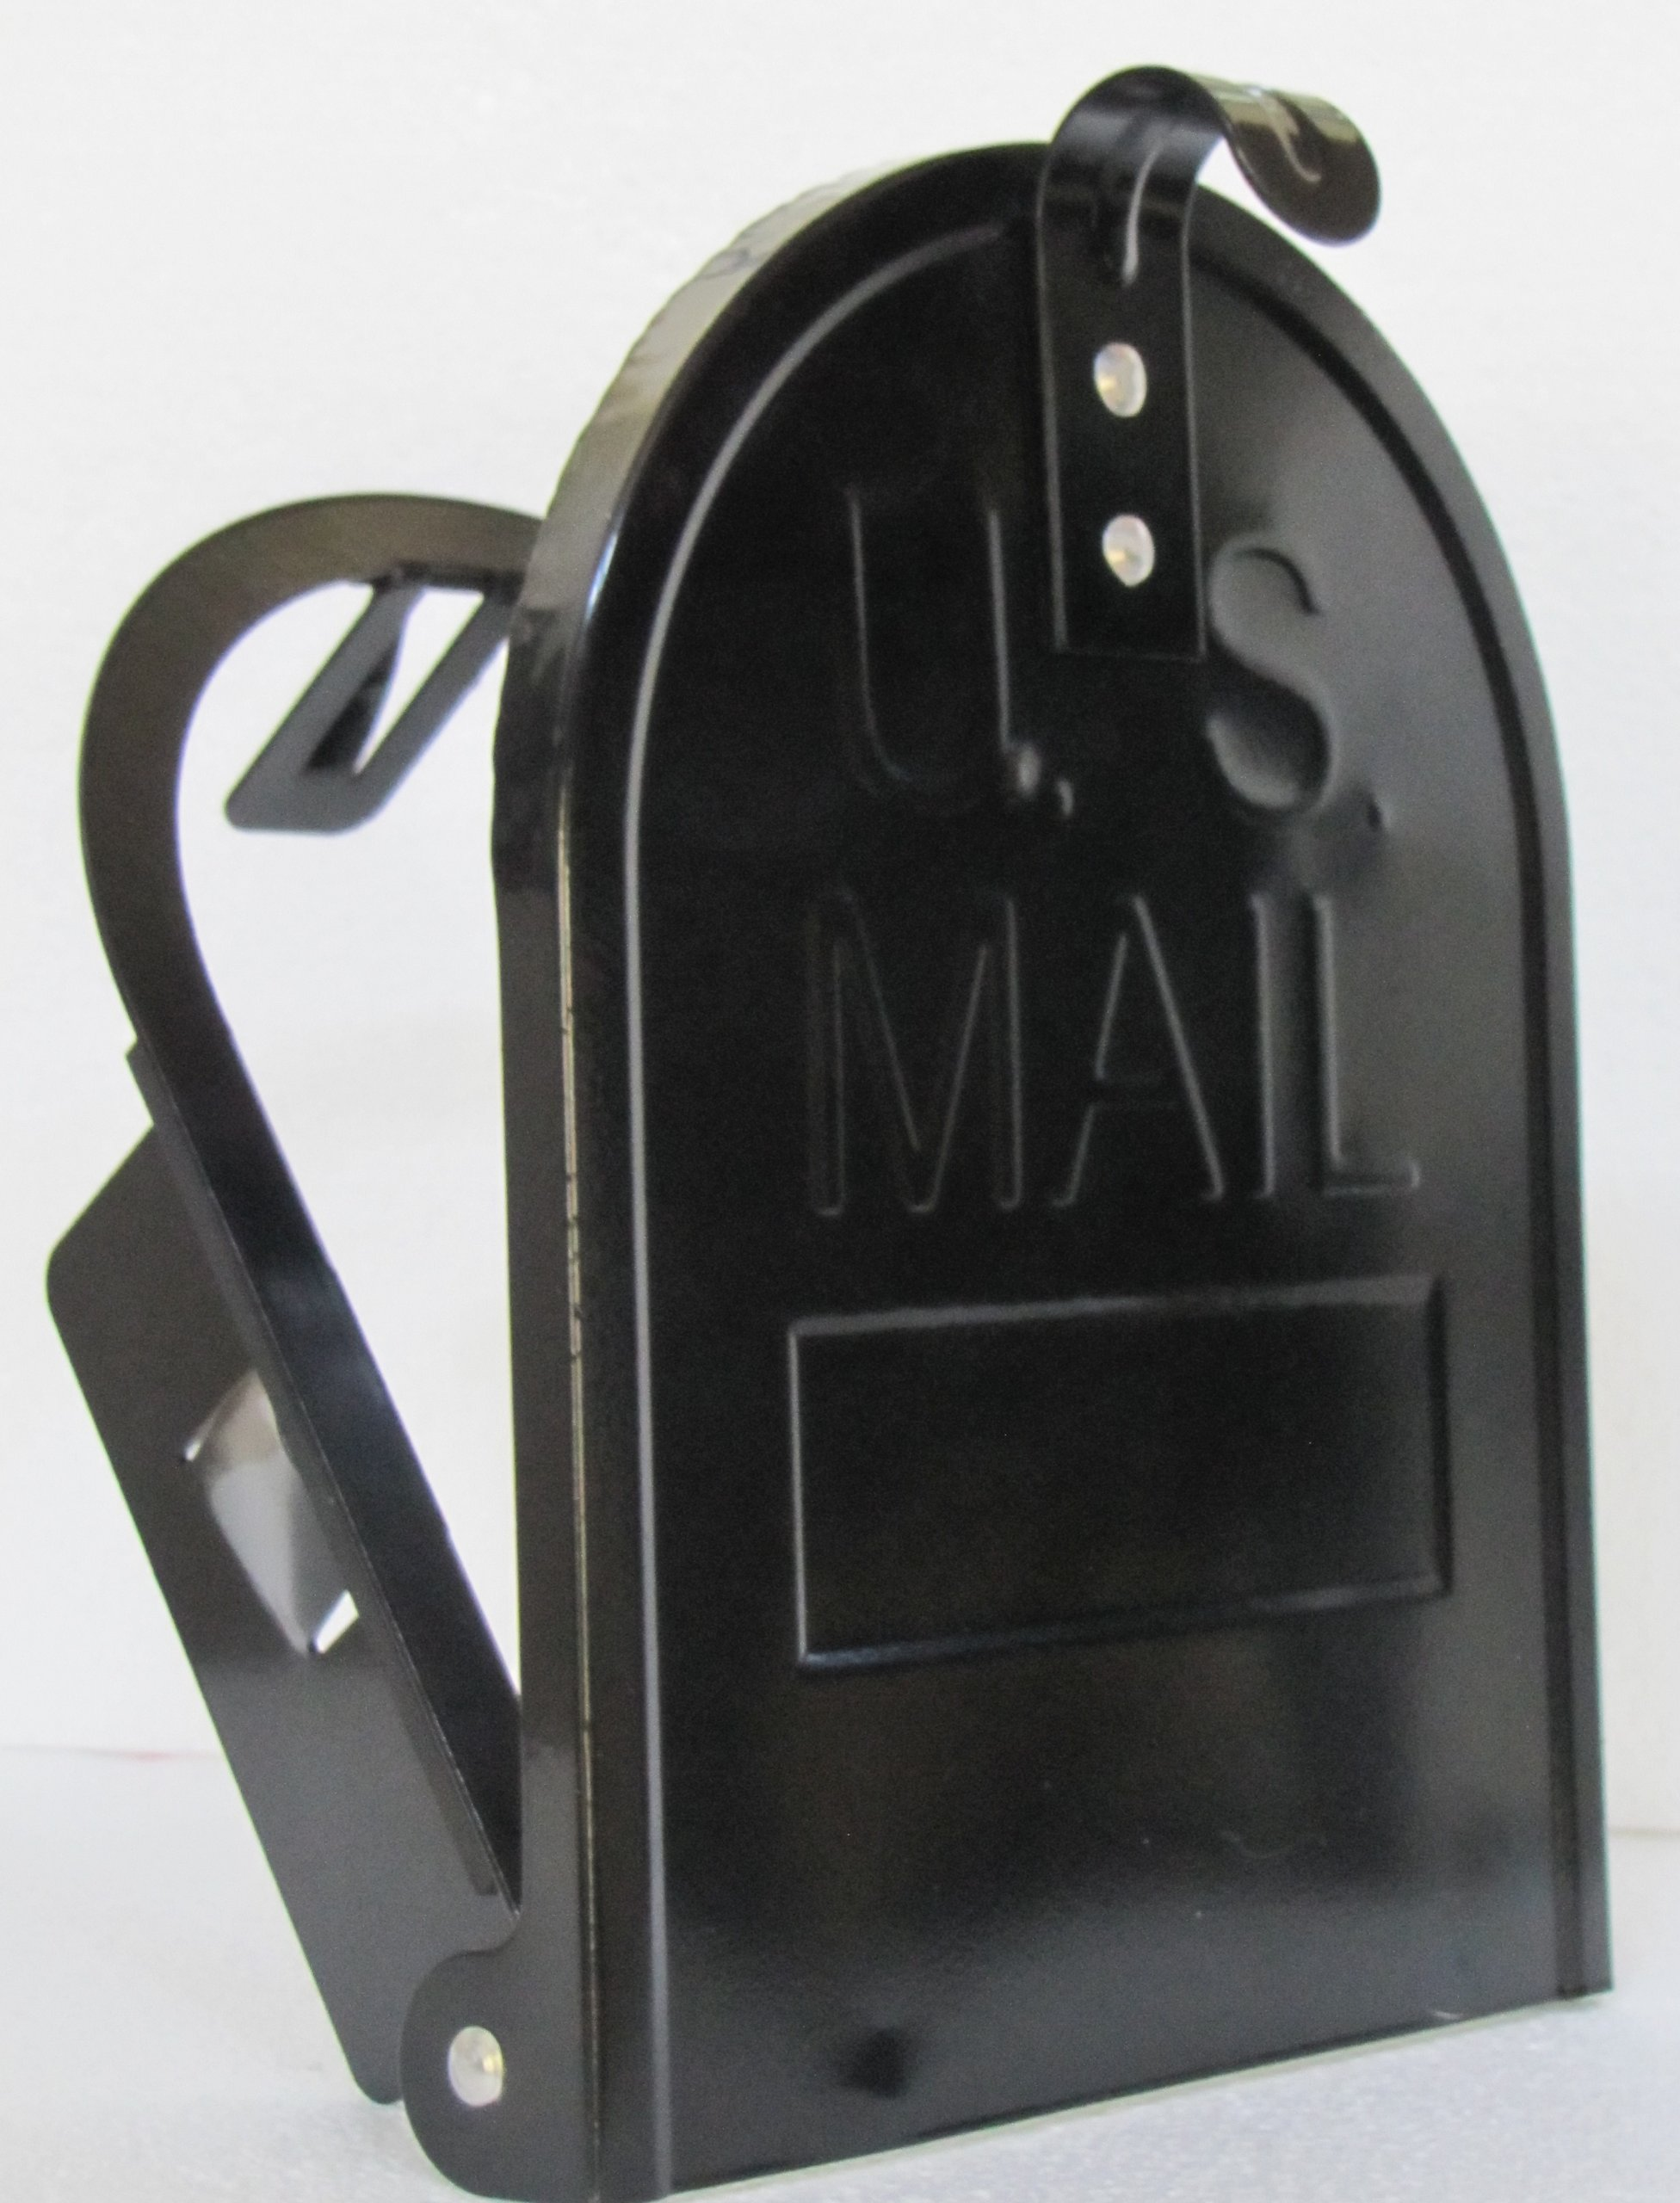 6 1/4 Inch (Width) by 8 Inch (Height) RetroFit ''Snap-In'' Mailbox Door Replacement - Black